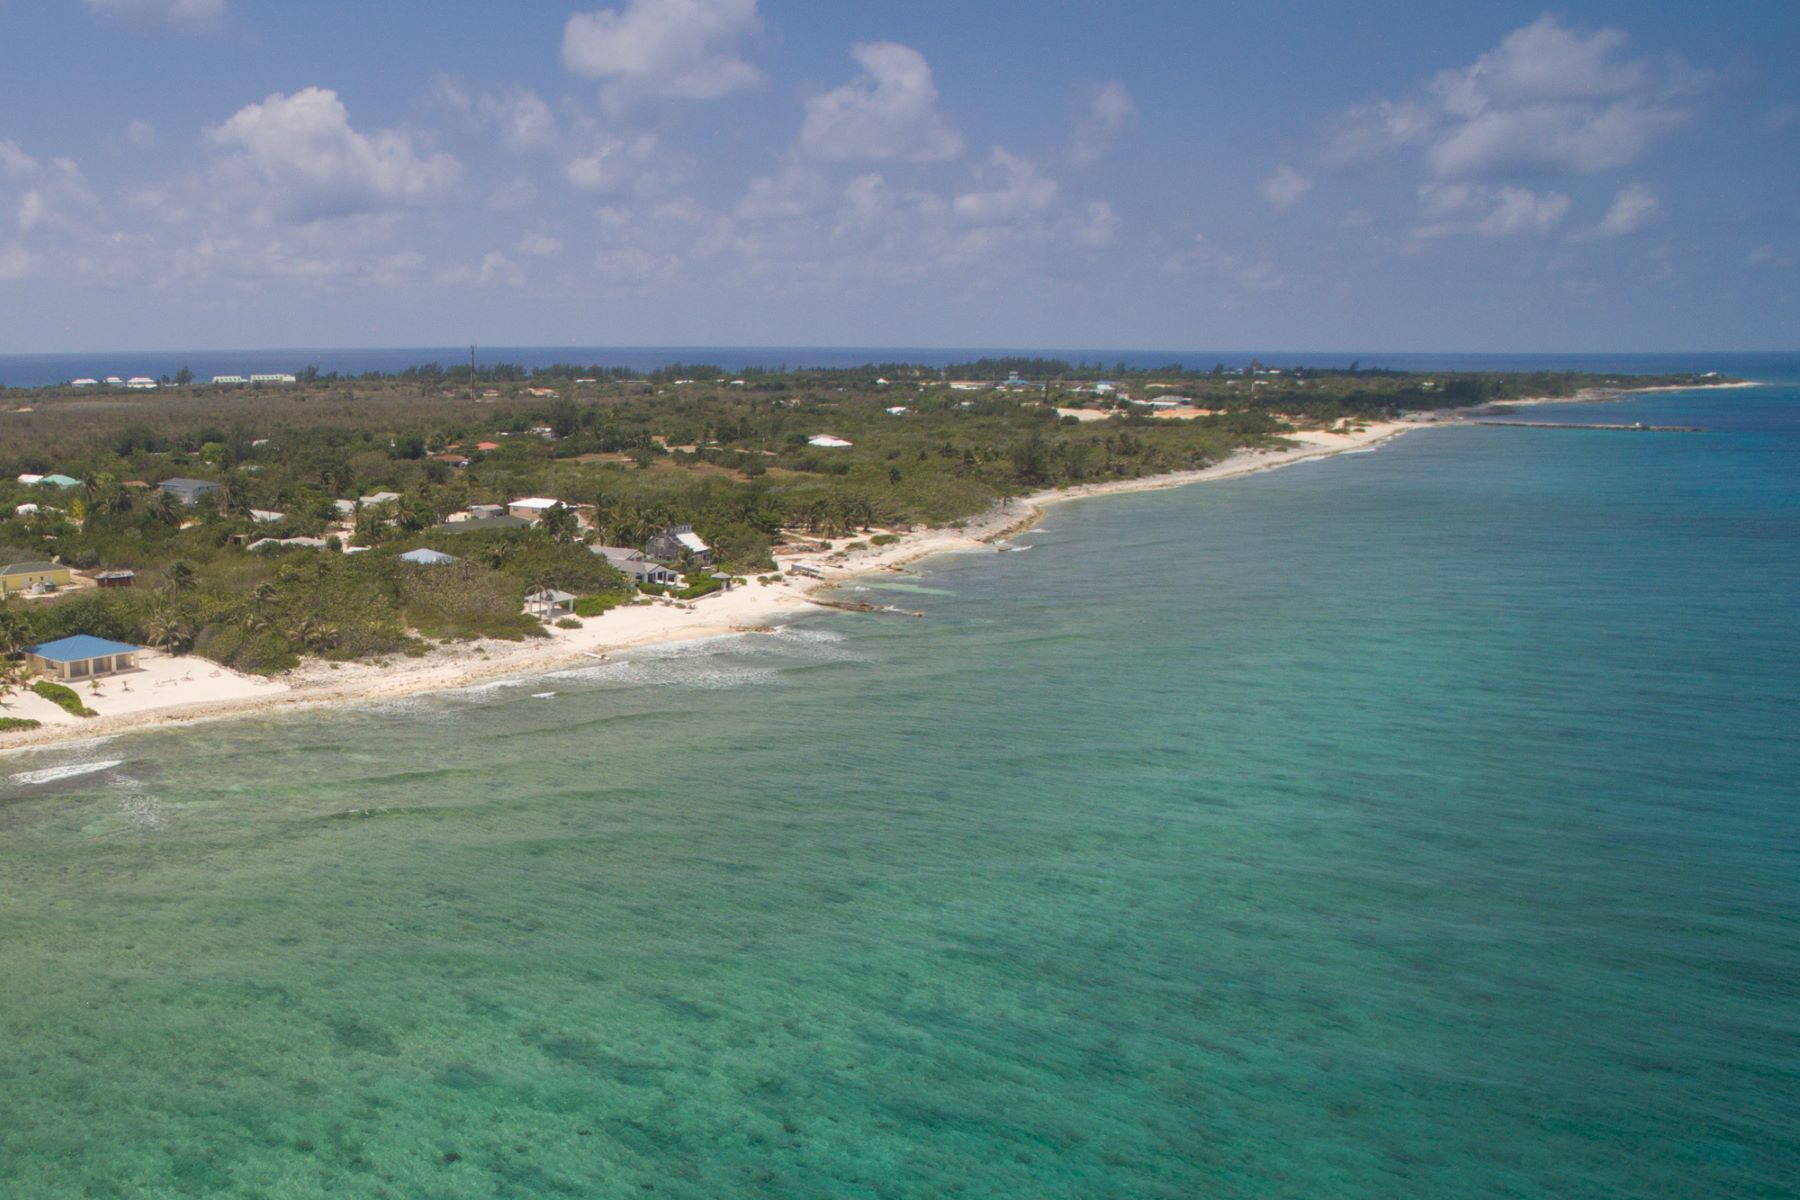 Terreno por un Venta en Cayman Brac Land for sale Dream Ln Cayman Brac West Other Cayman Brac, KY2 Islas Caimán